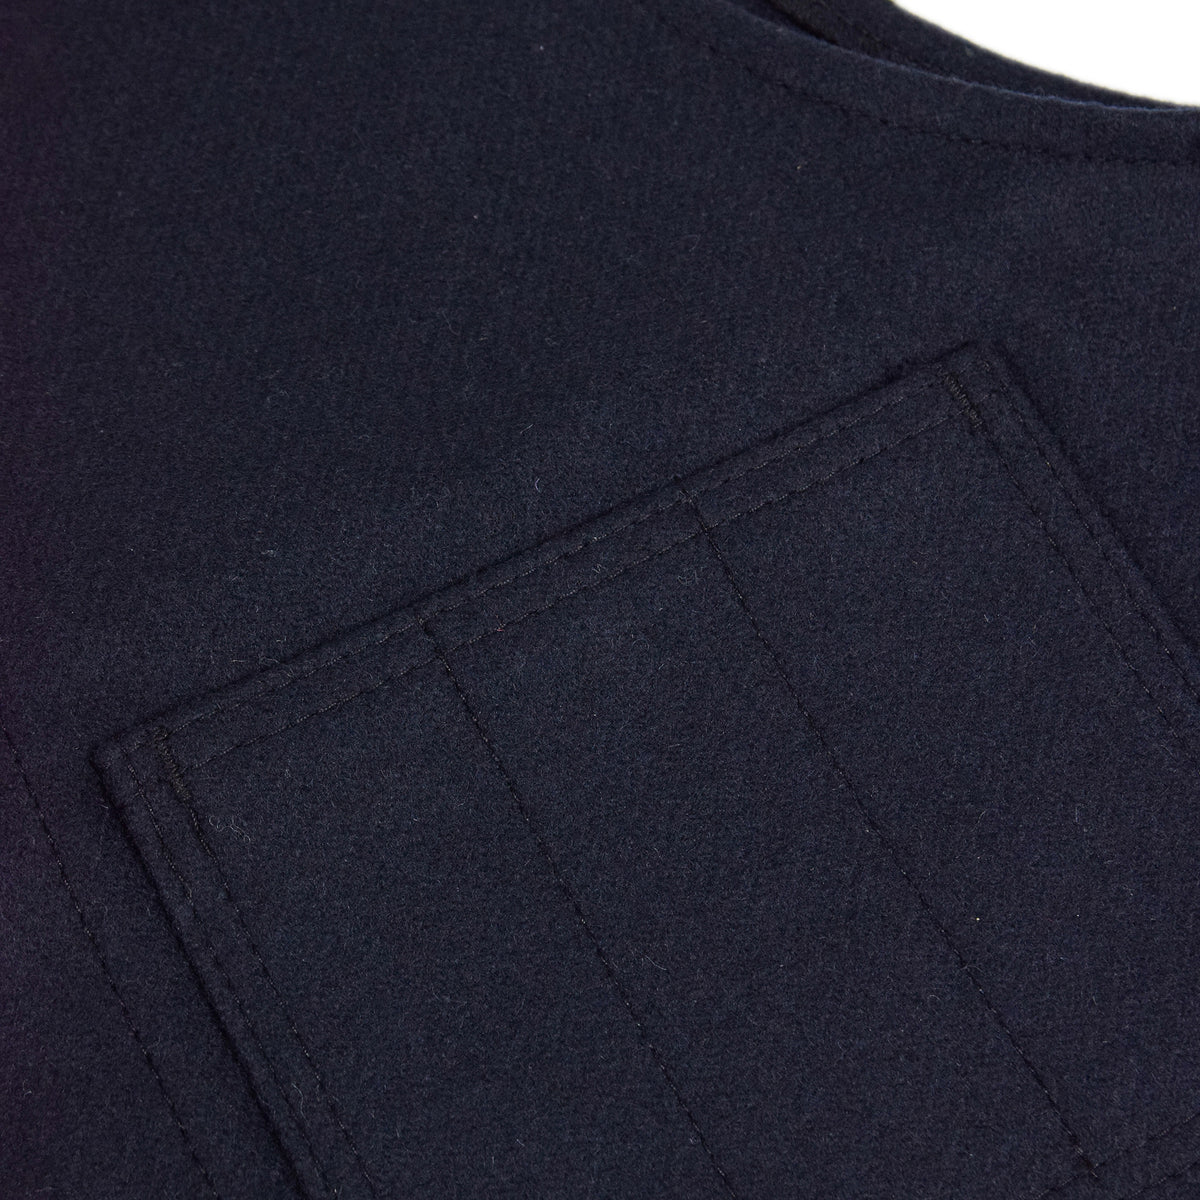 Filson Mackinaw Wool Vest Navy Pocket Detail